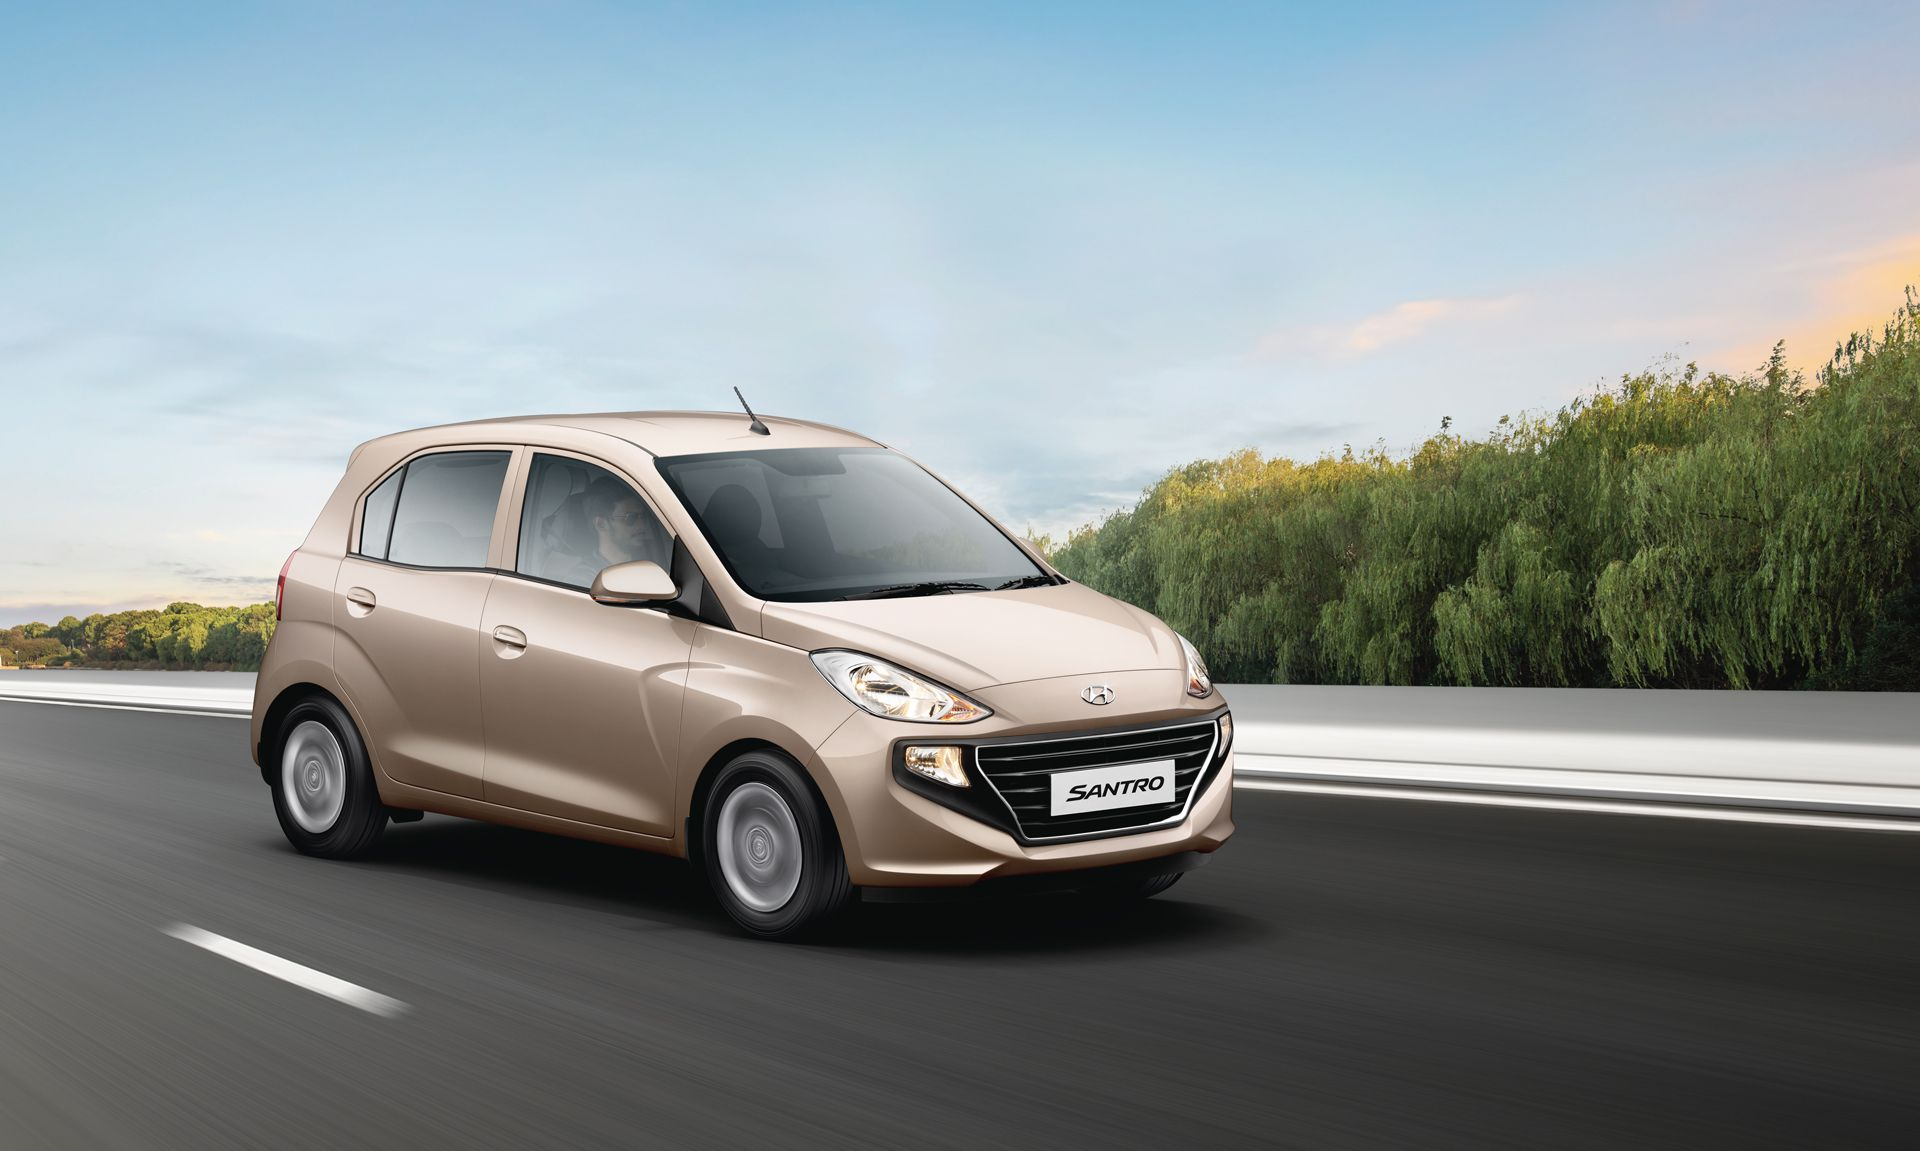 Hyundai All New Santro Dealer Mumbai, Thane - Shreenath Hyundai